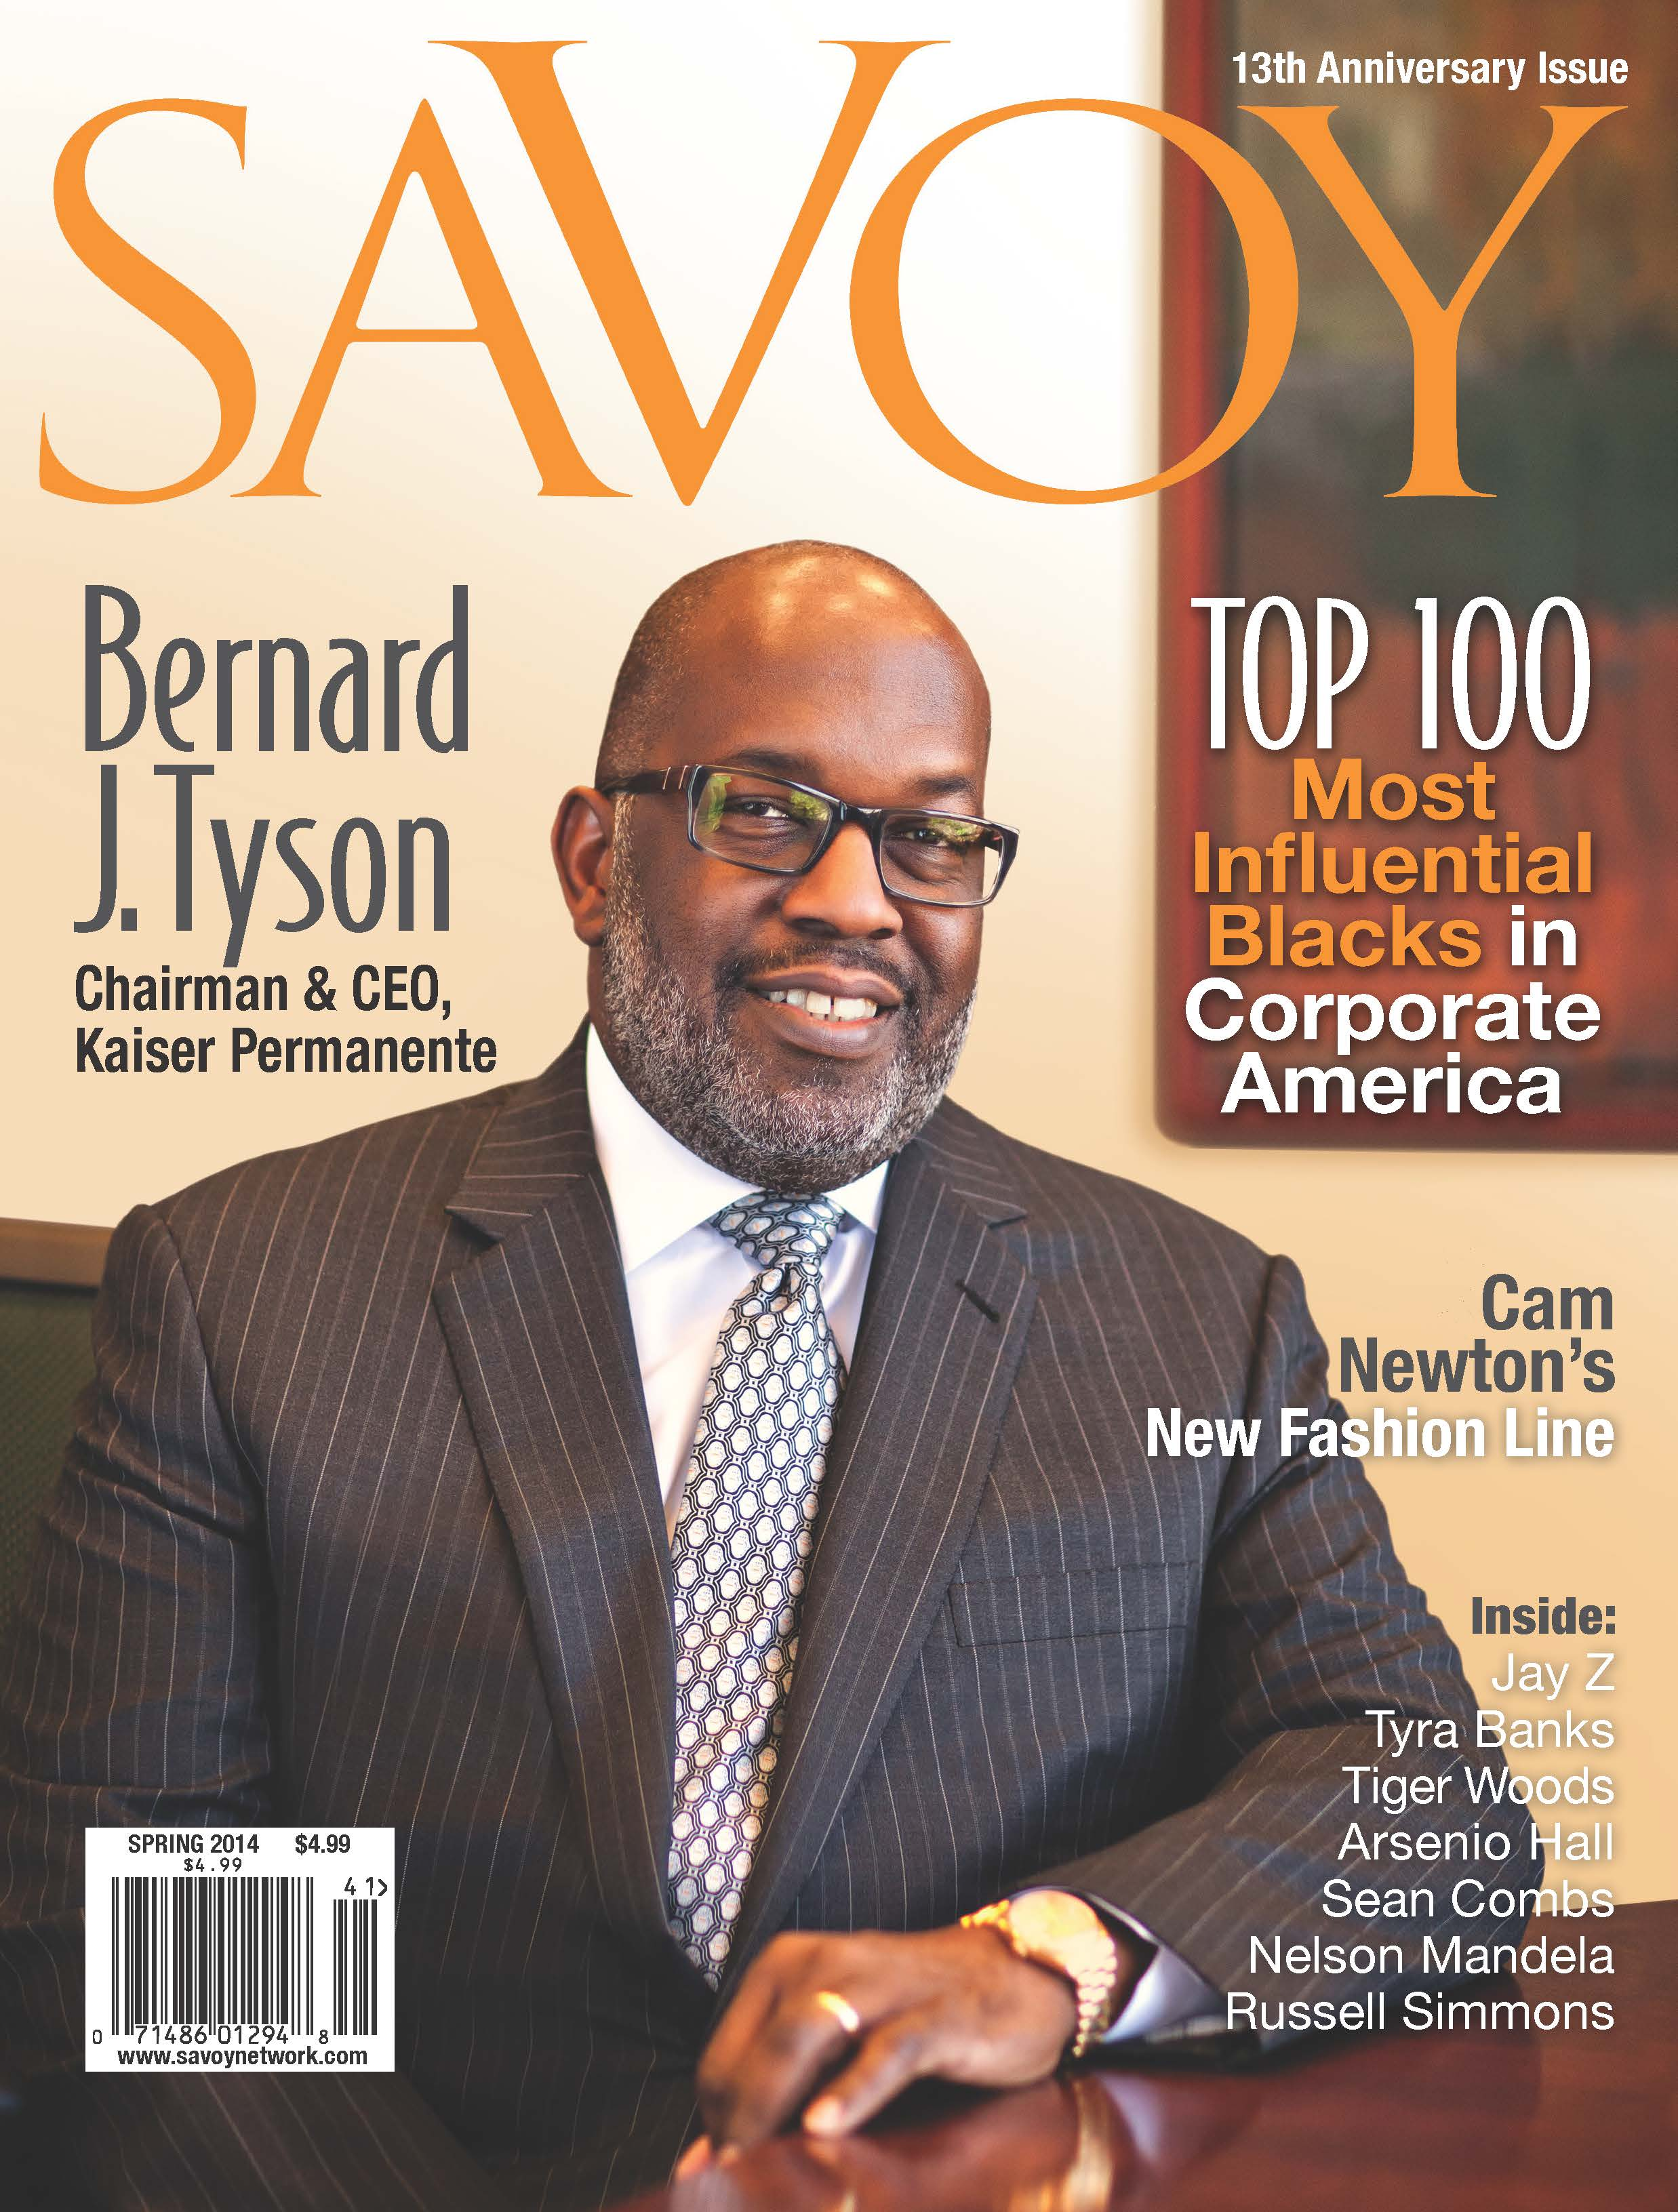 Top 100 Most Influential Blacks In Corporate America